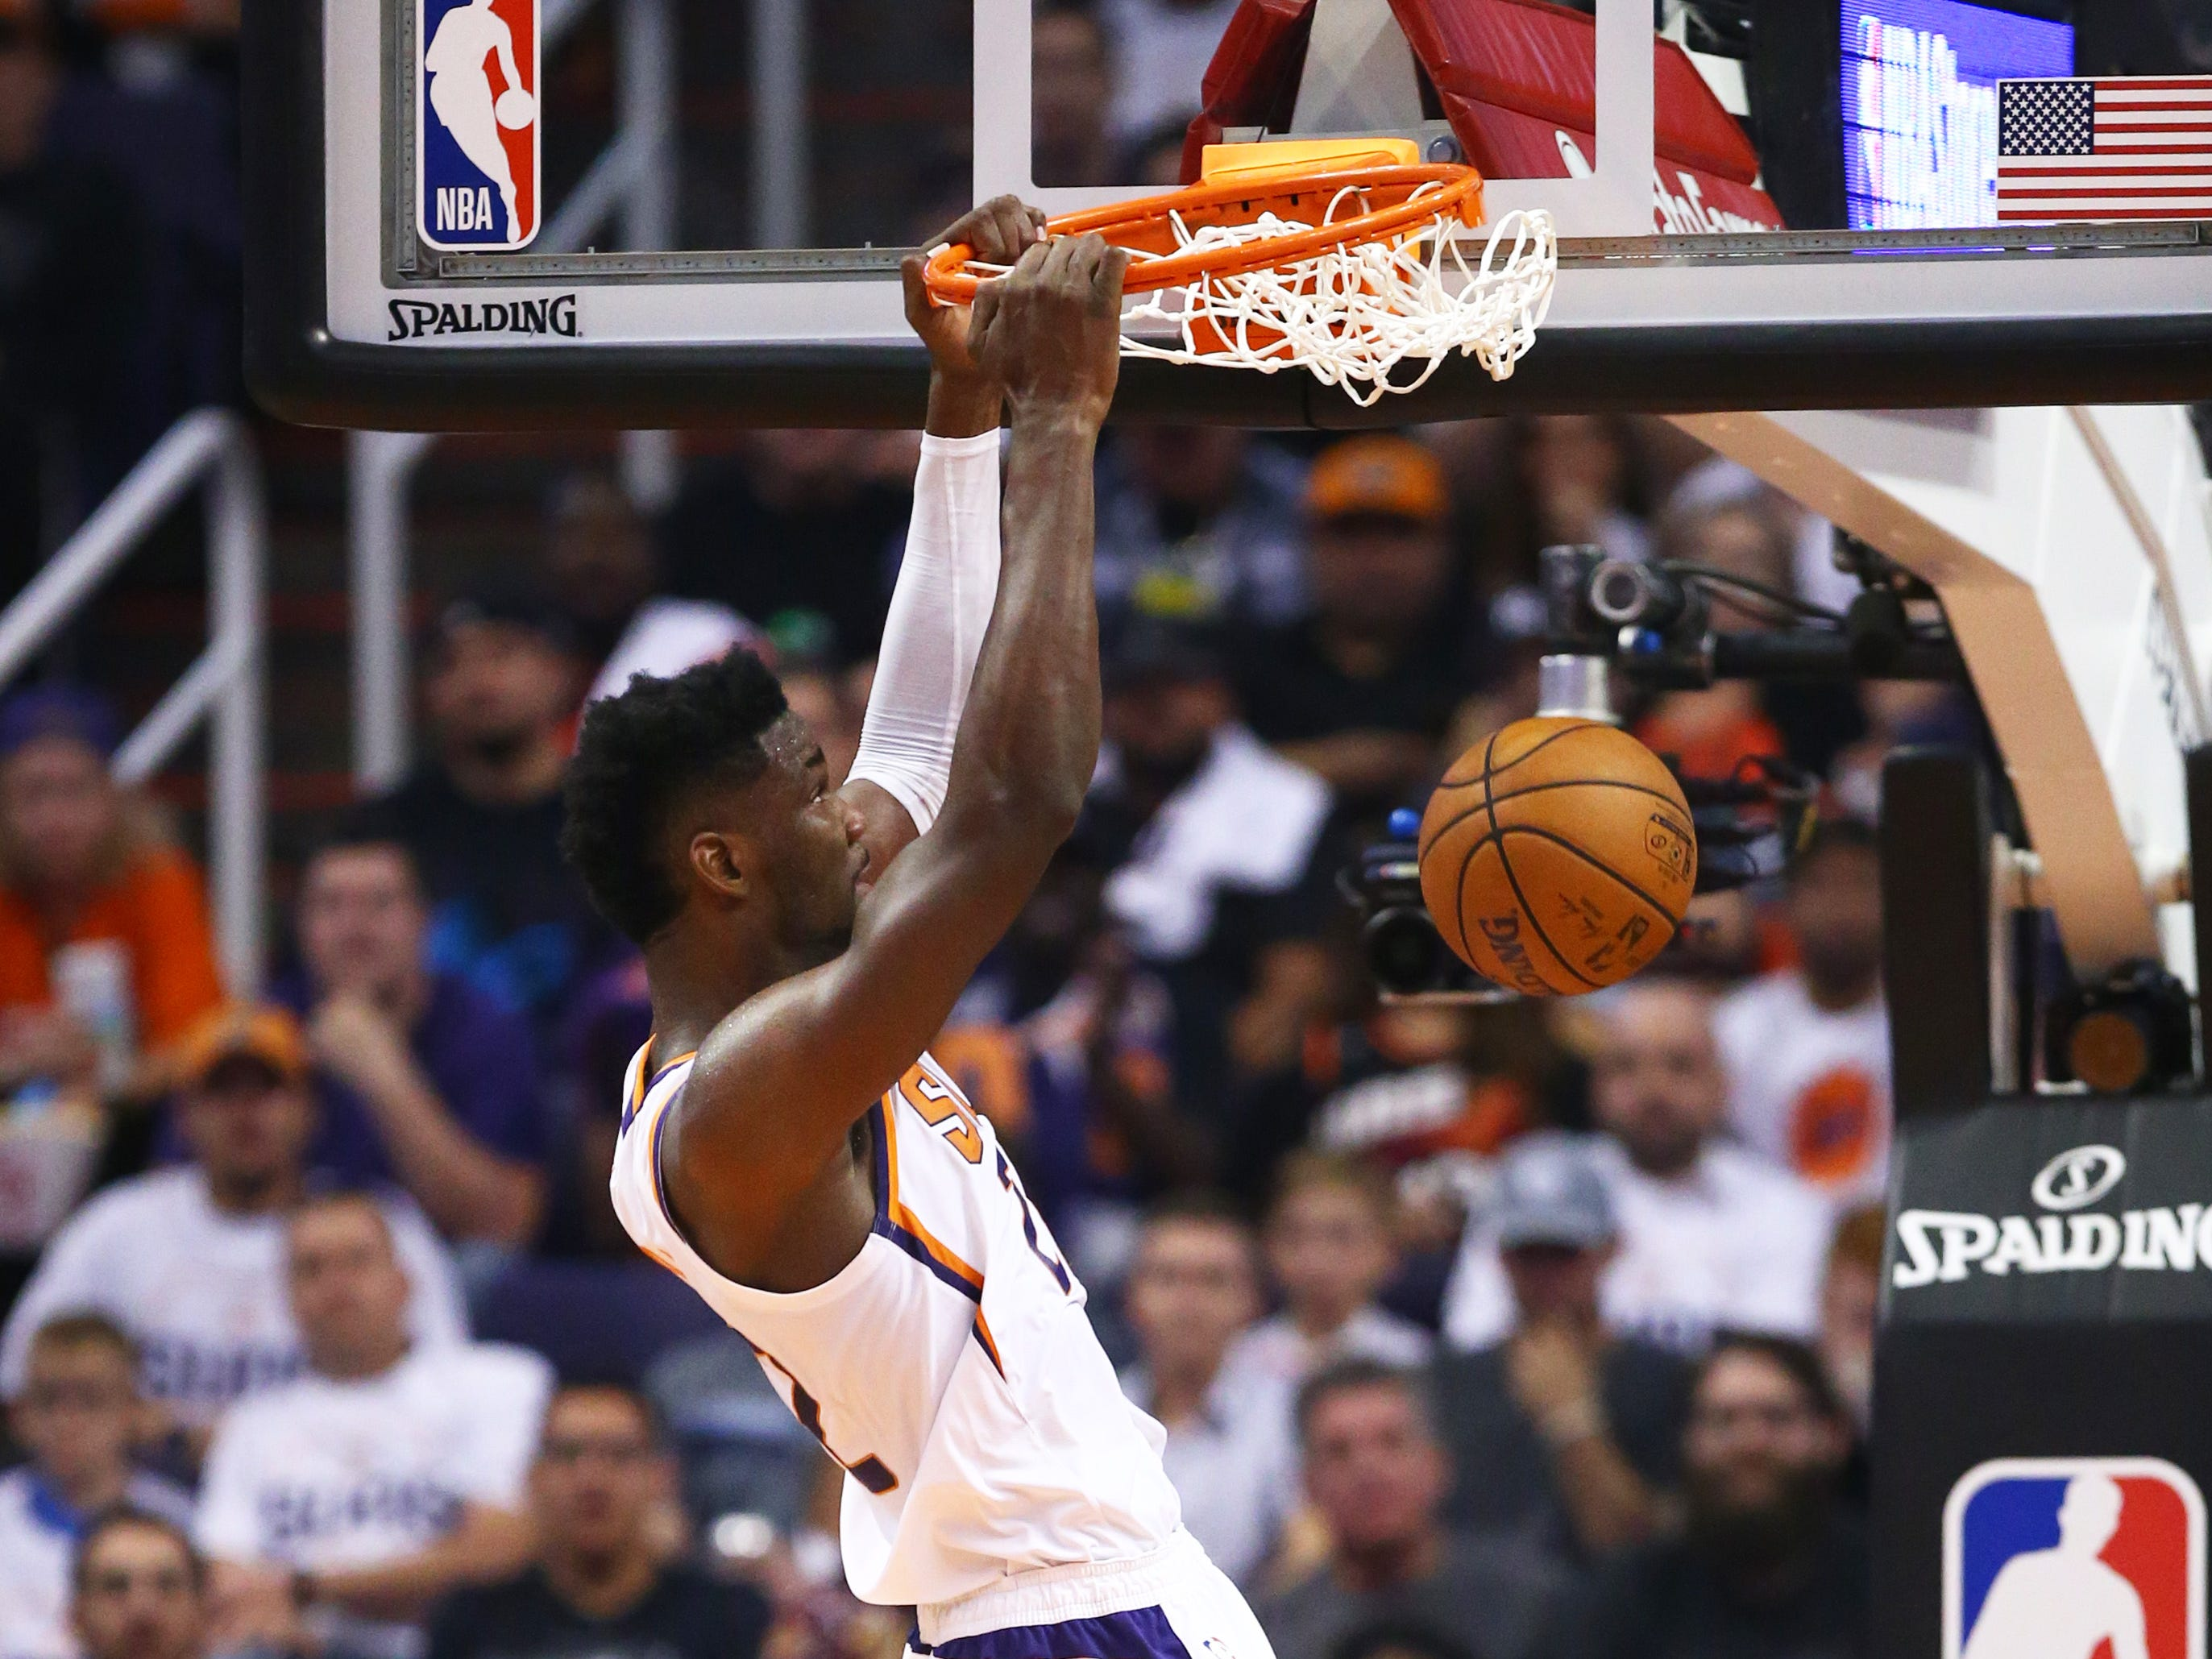 Phoenix Suns center Deandre Ayton dunks the ball against the Dallas Mavericks during the season opener at Talking Stick Resort Arena on Oct. 17, 2018, in Phoenix, Ariz.